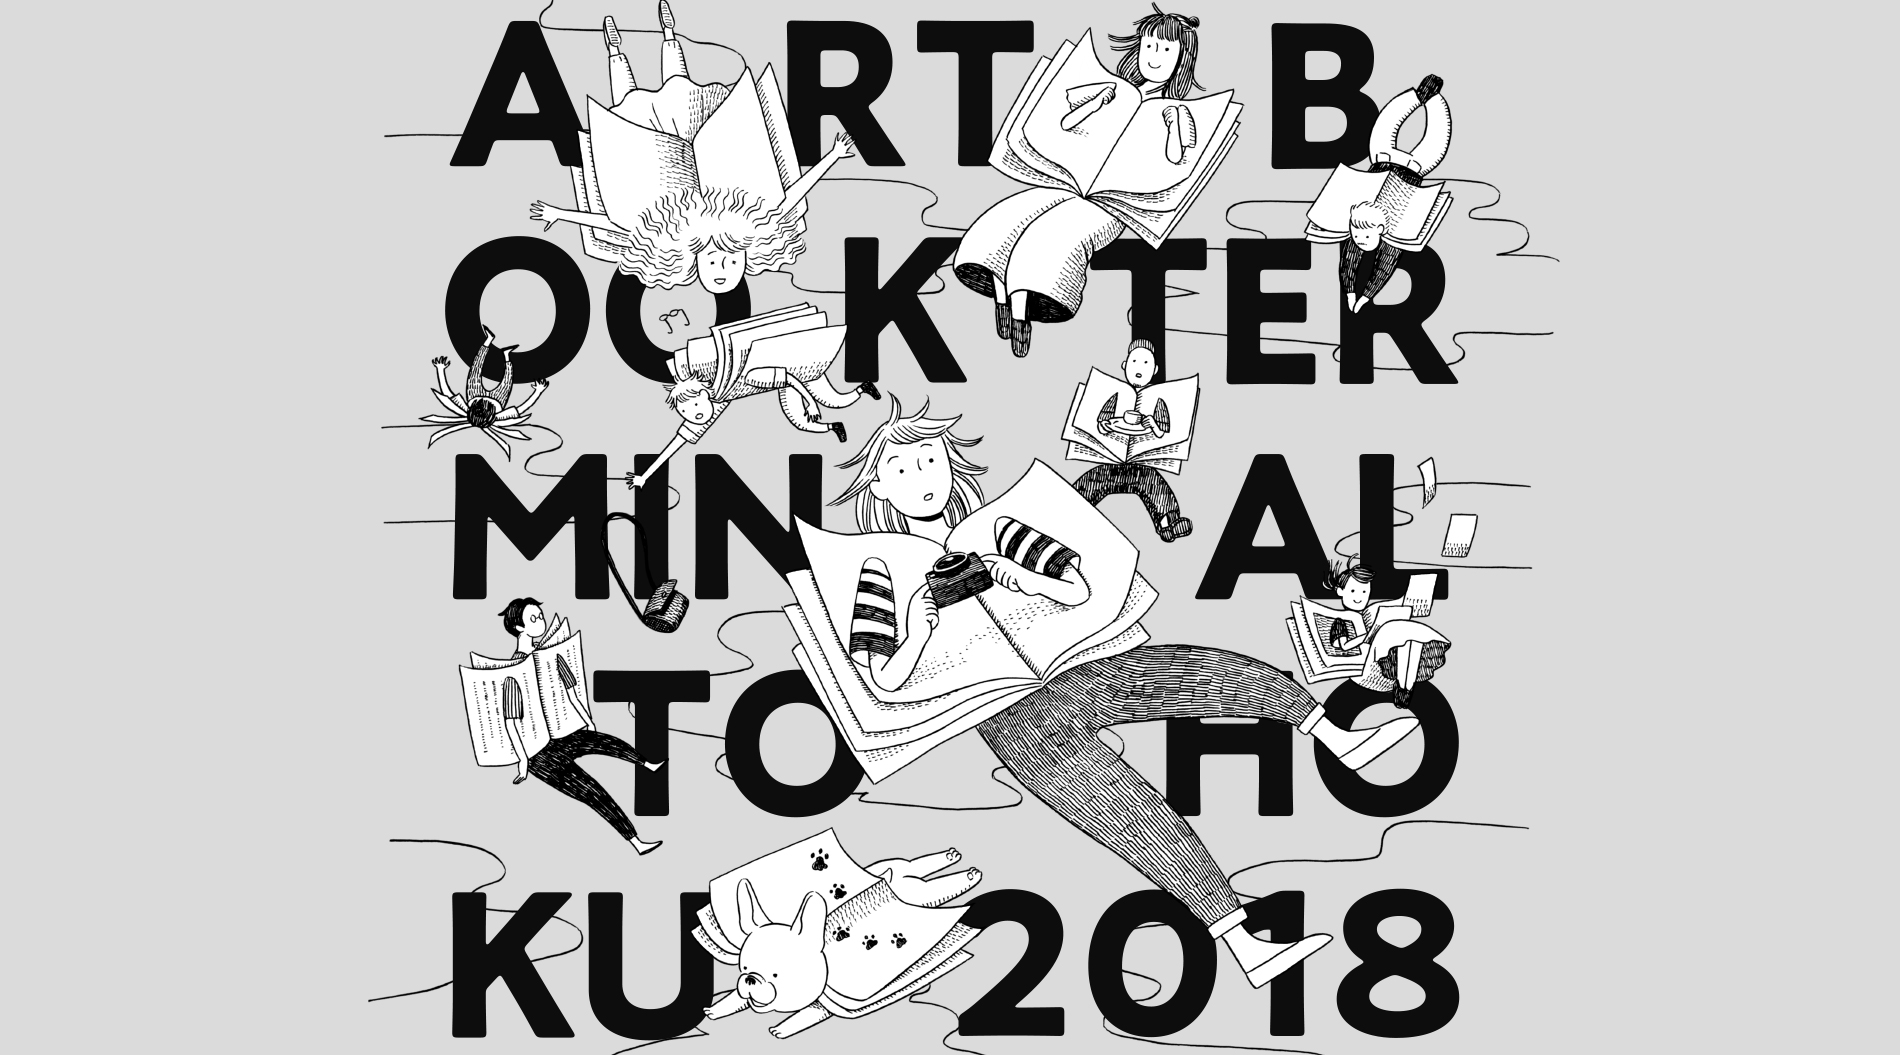 ART BOOK TERMINAL TOHOKU 2018